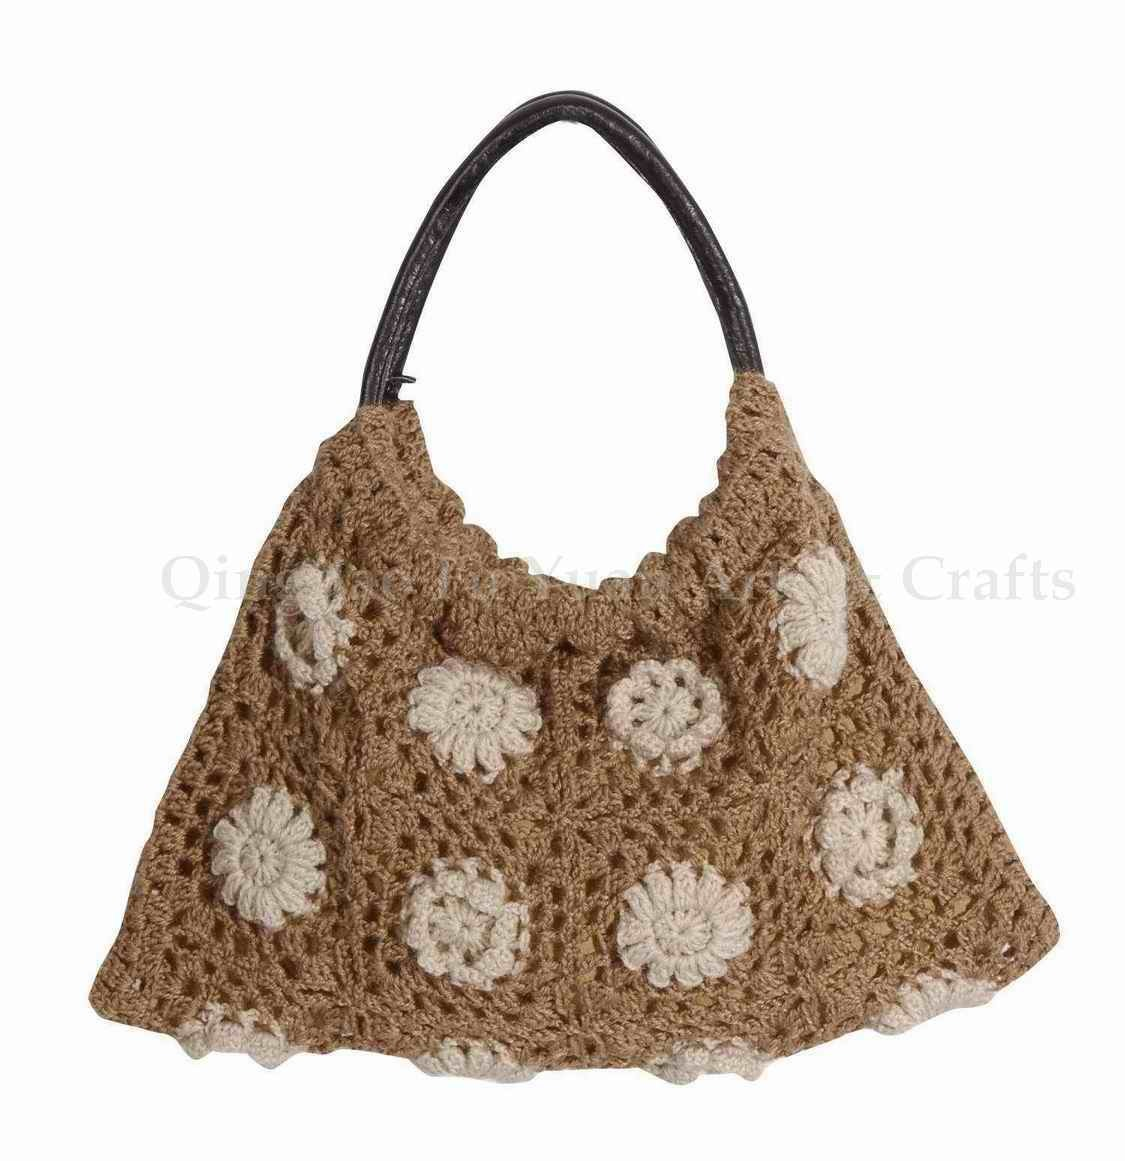 Related Pictures crochet purses handbags totes